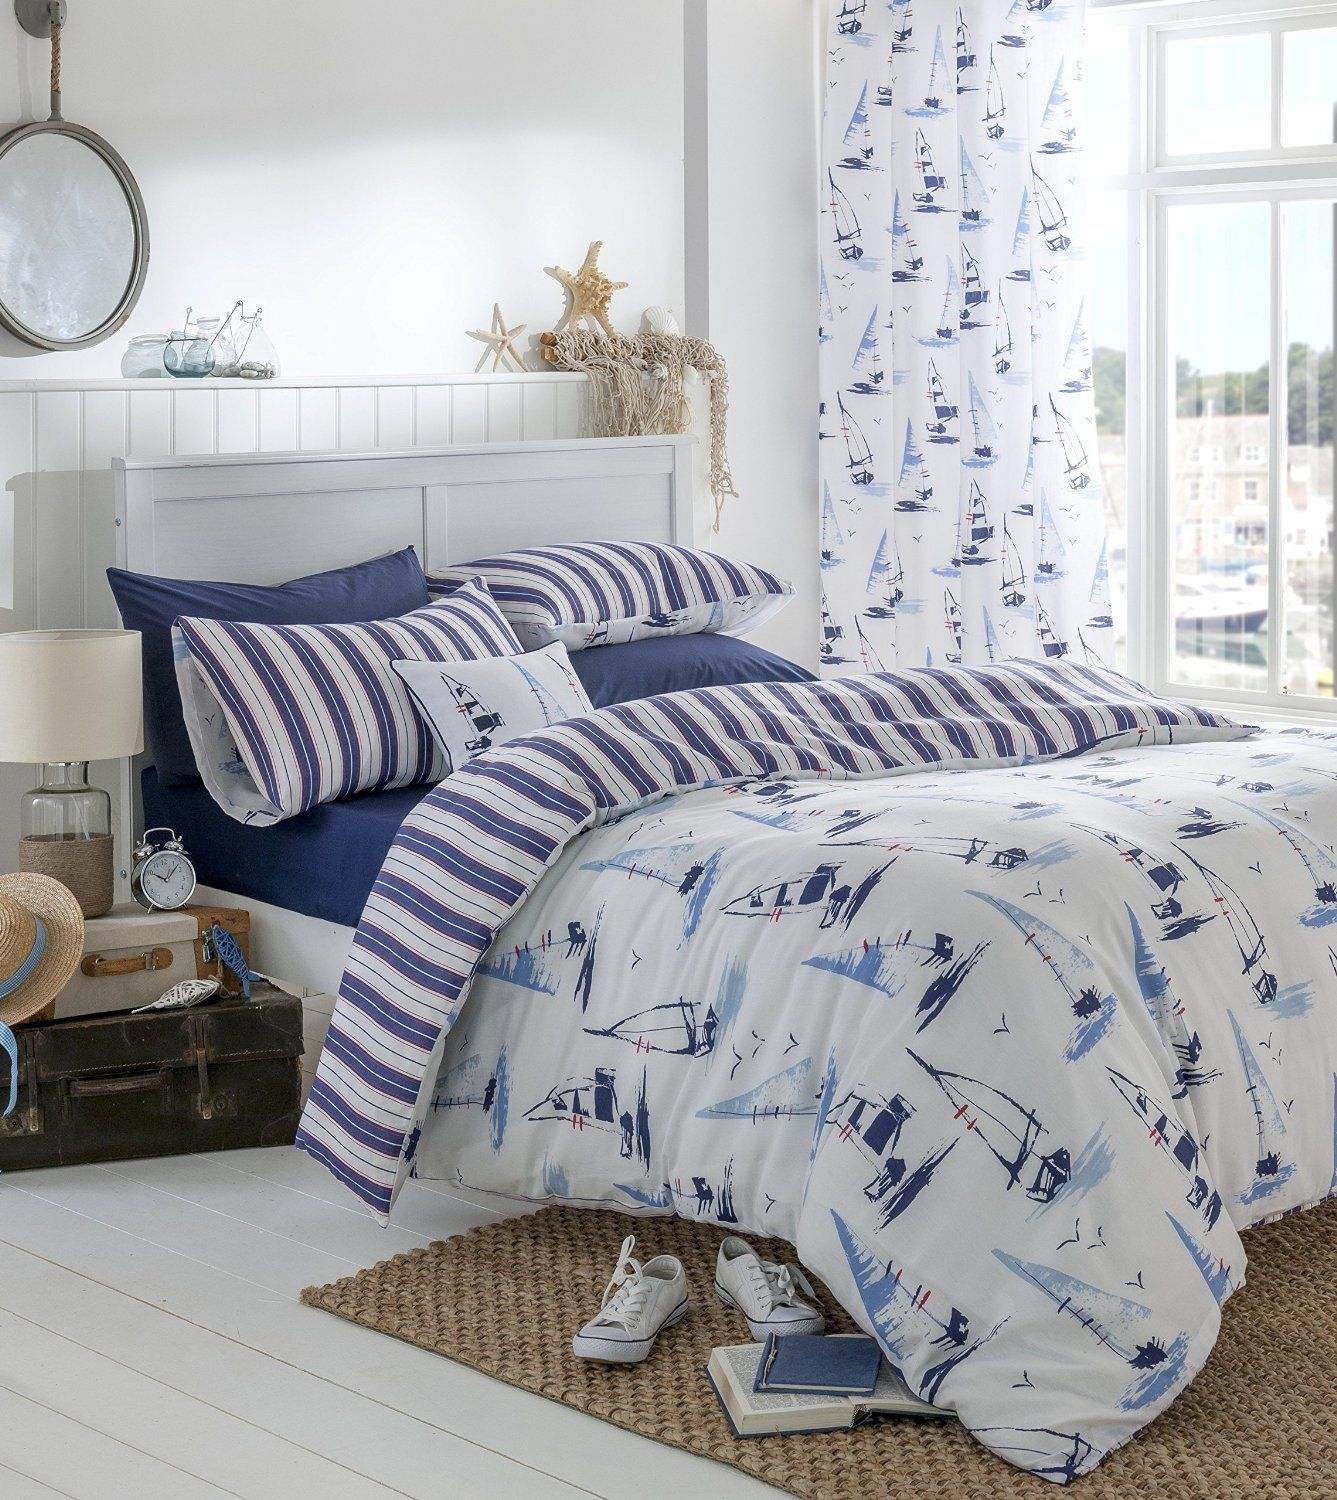 Nautical Bedding King: Nautical Boats Duvet Cover Bedding Sets Or Eyelet Curtains